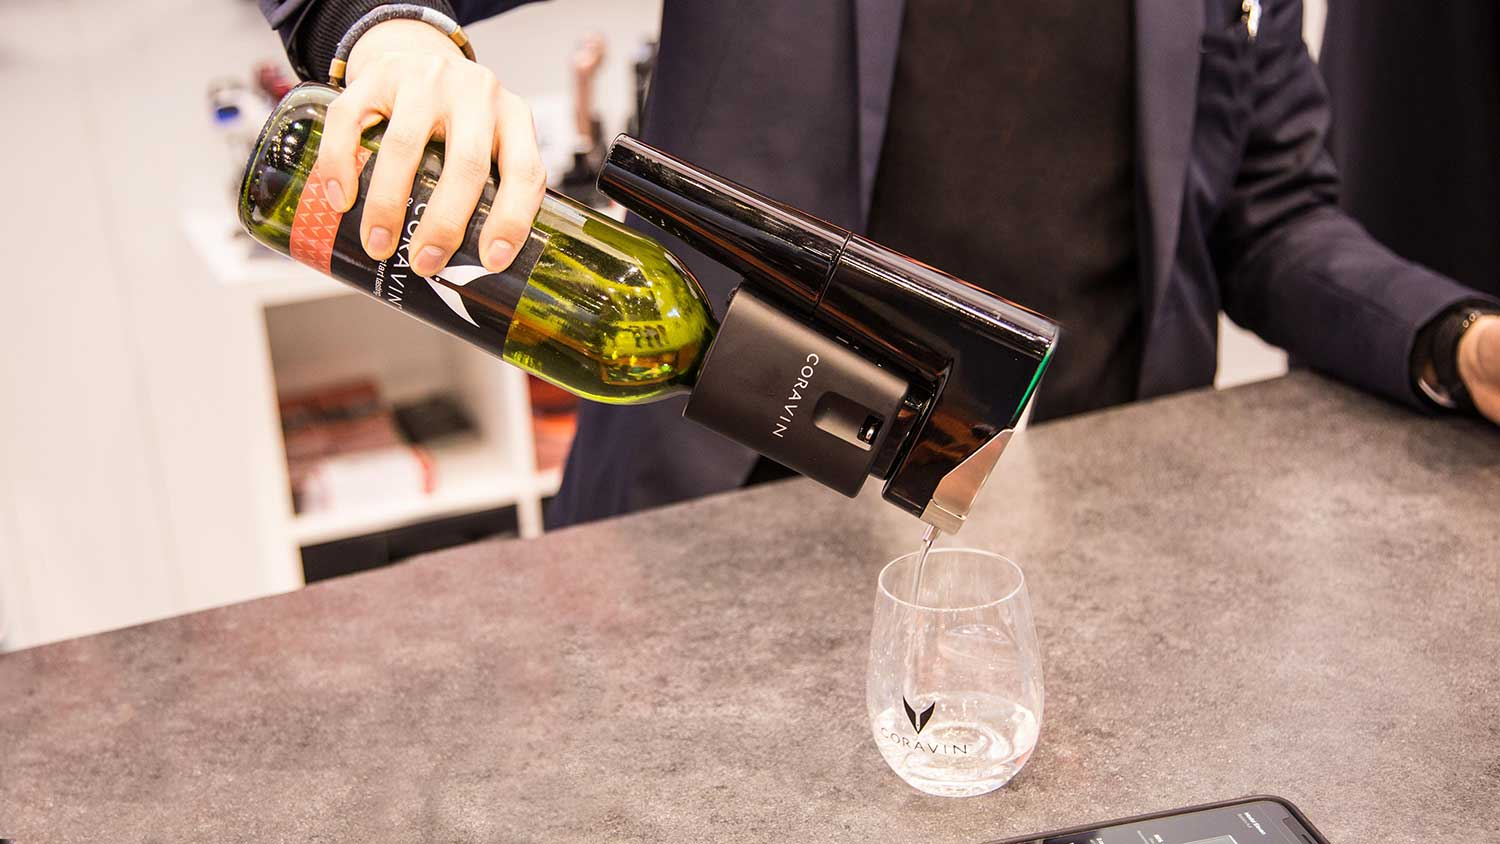 The Coravin Model Eleven opens wine without removing the cork, preserves your vino with argon gas and uses Bluetooth to connect to your phone